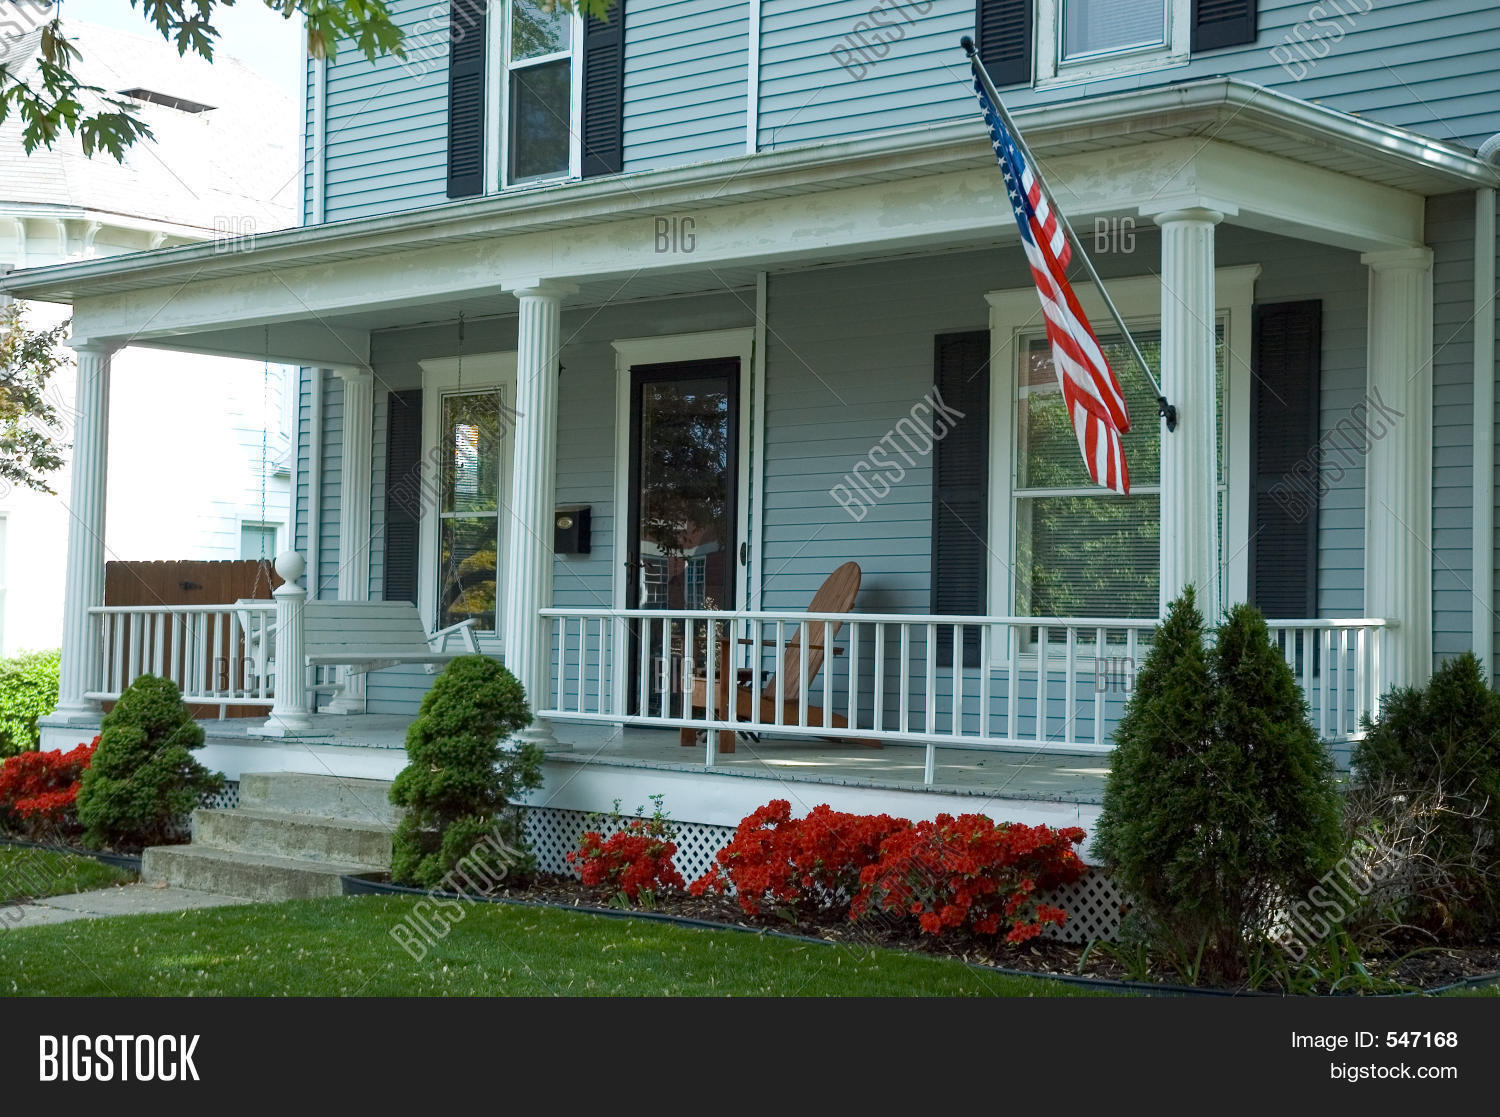 🔥 American Front Porch – 547168 Image & Stock Photo Throughout American Flag Porch Swings (View 8 of 25)